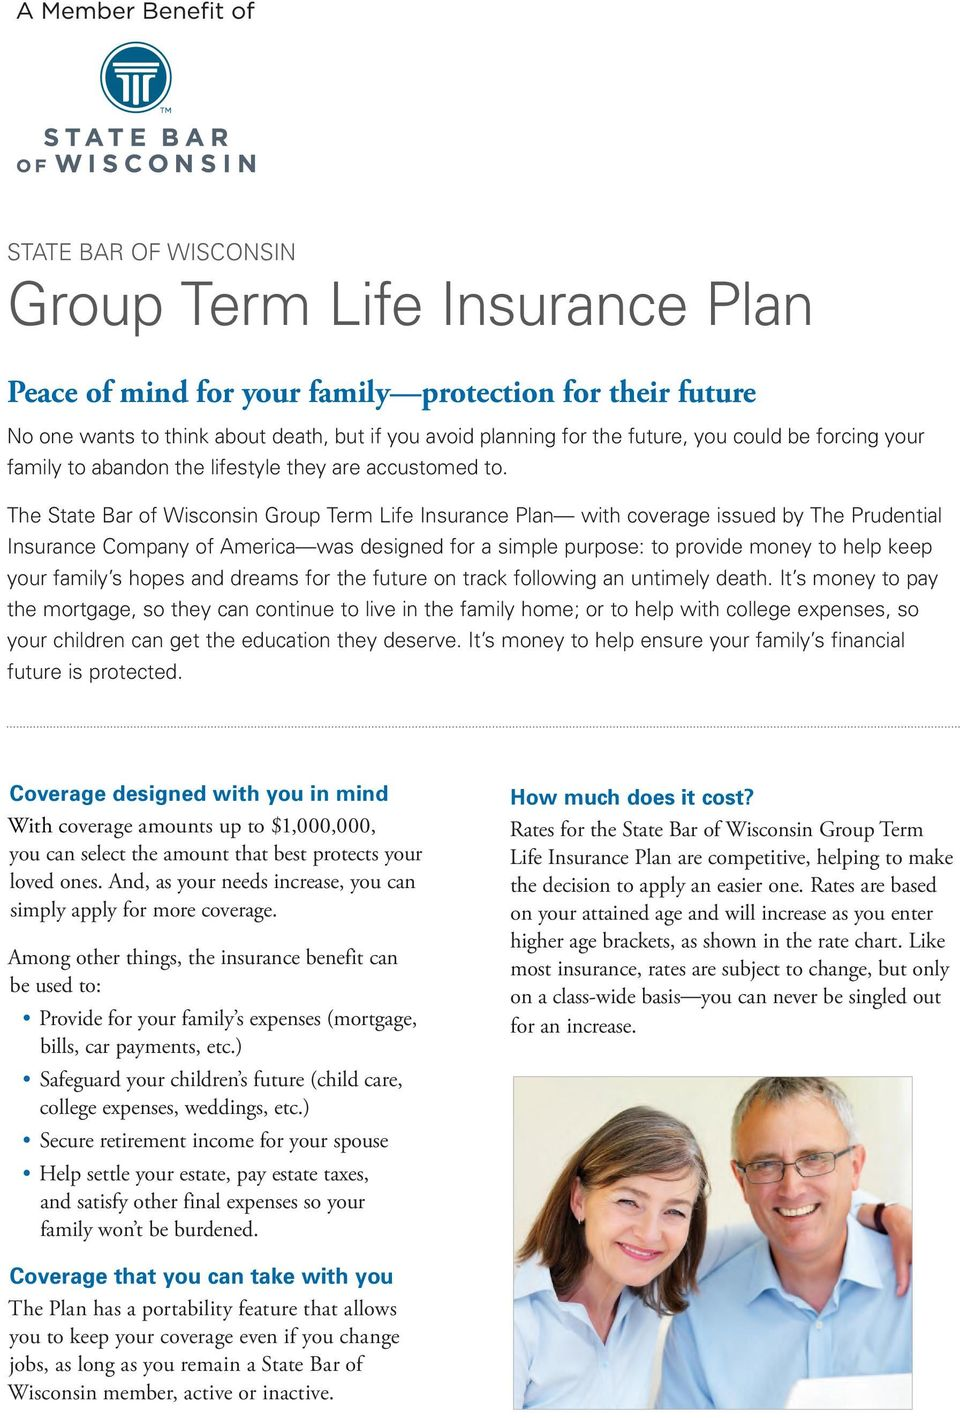 The State Bar of Wisconsin Group Term Life Insurance Plan with coverage issued by The Prudential Insurance Company of America was designed for a simple purpose: to provide money to help keep your